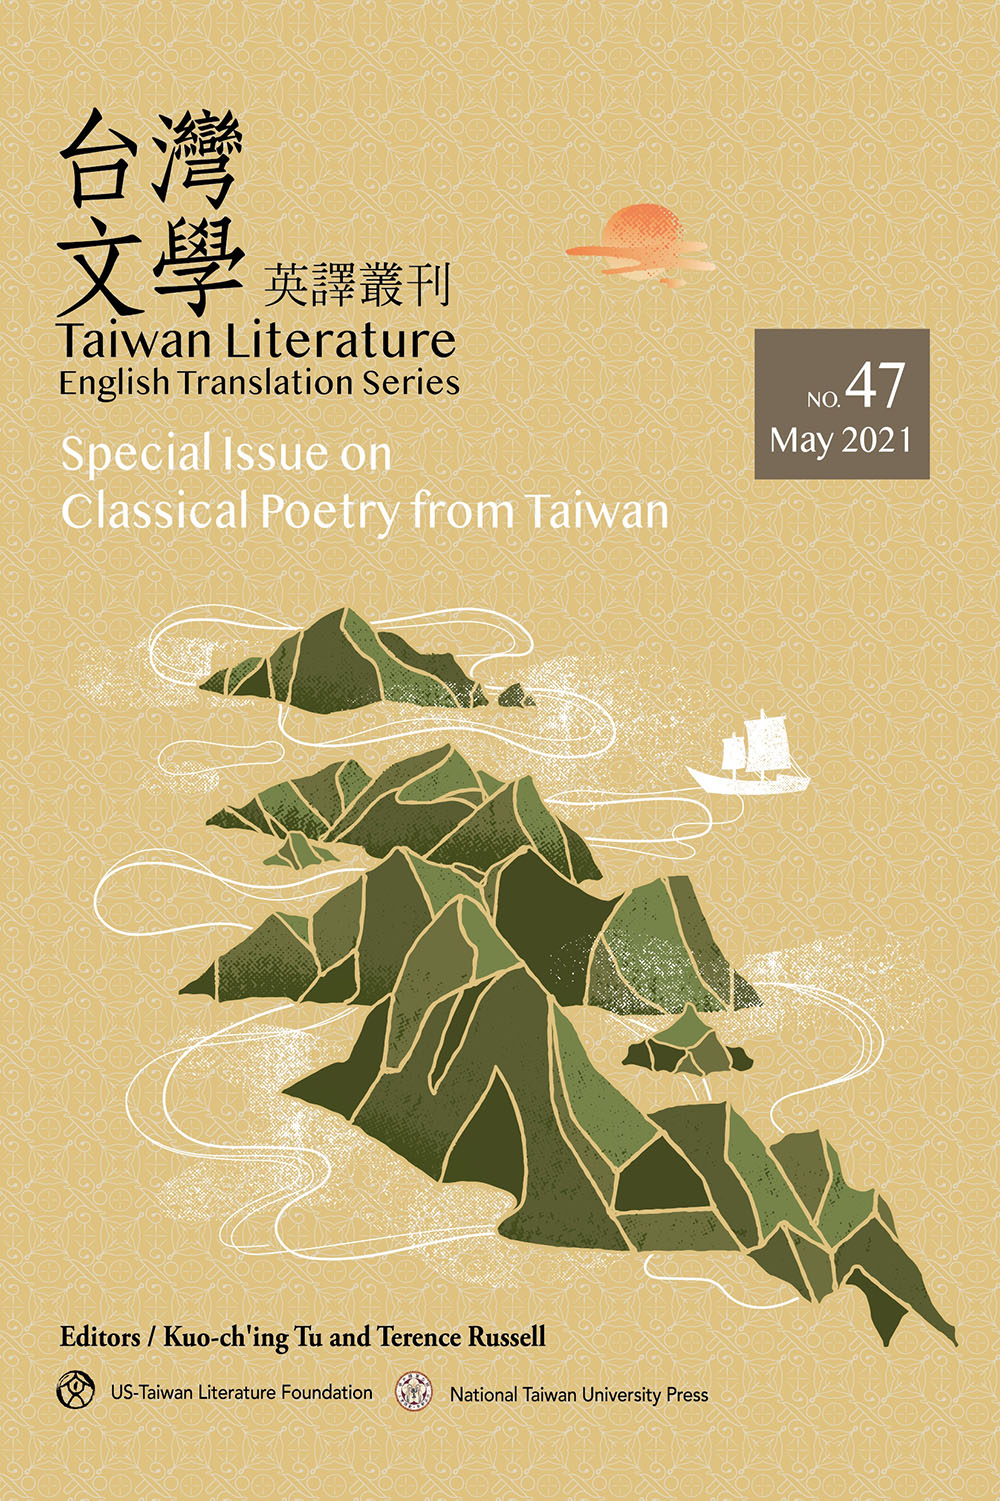 Taiwan Literature: English Translation Series, No. 47 ( Special Issue on Classical Poetry from Taiwan)